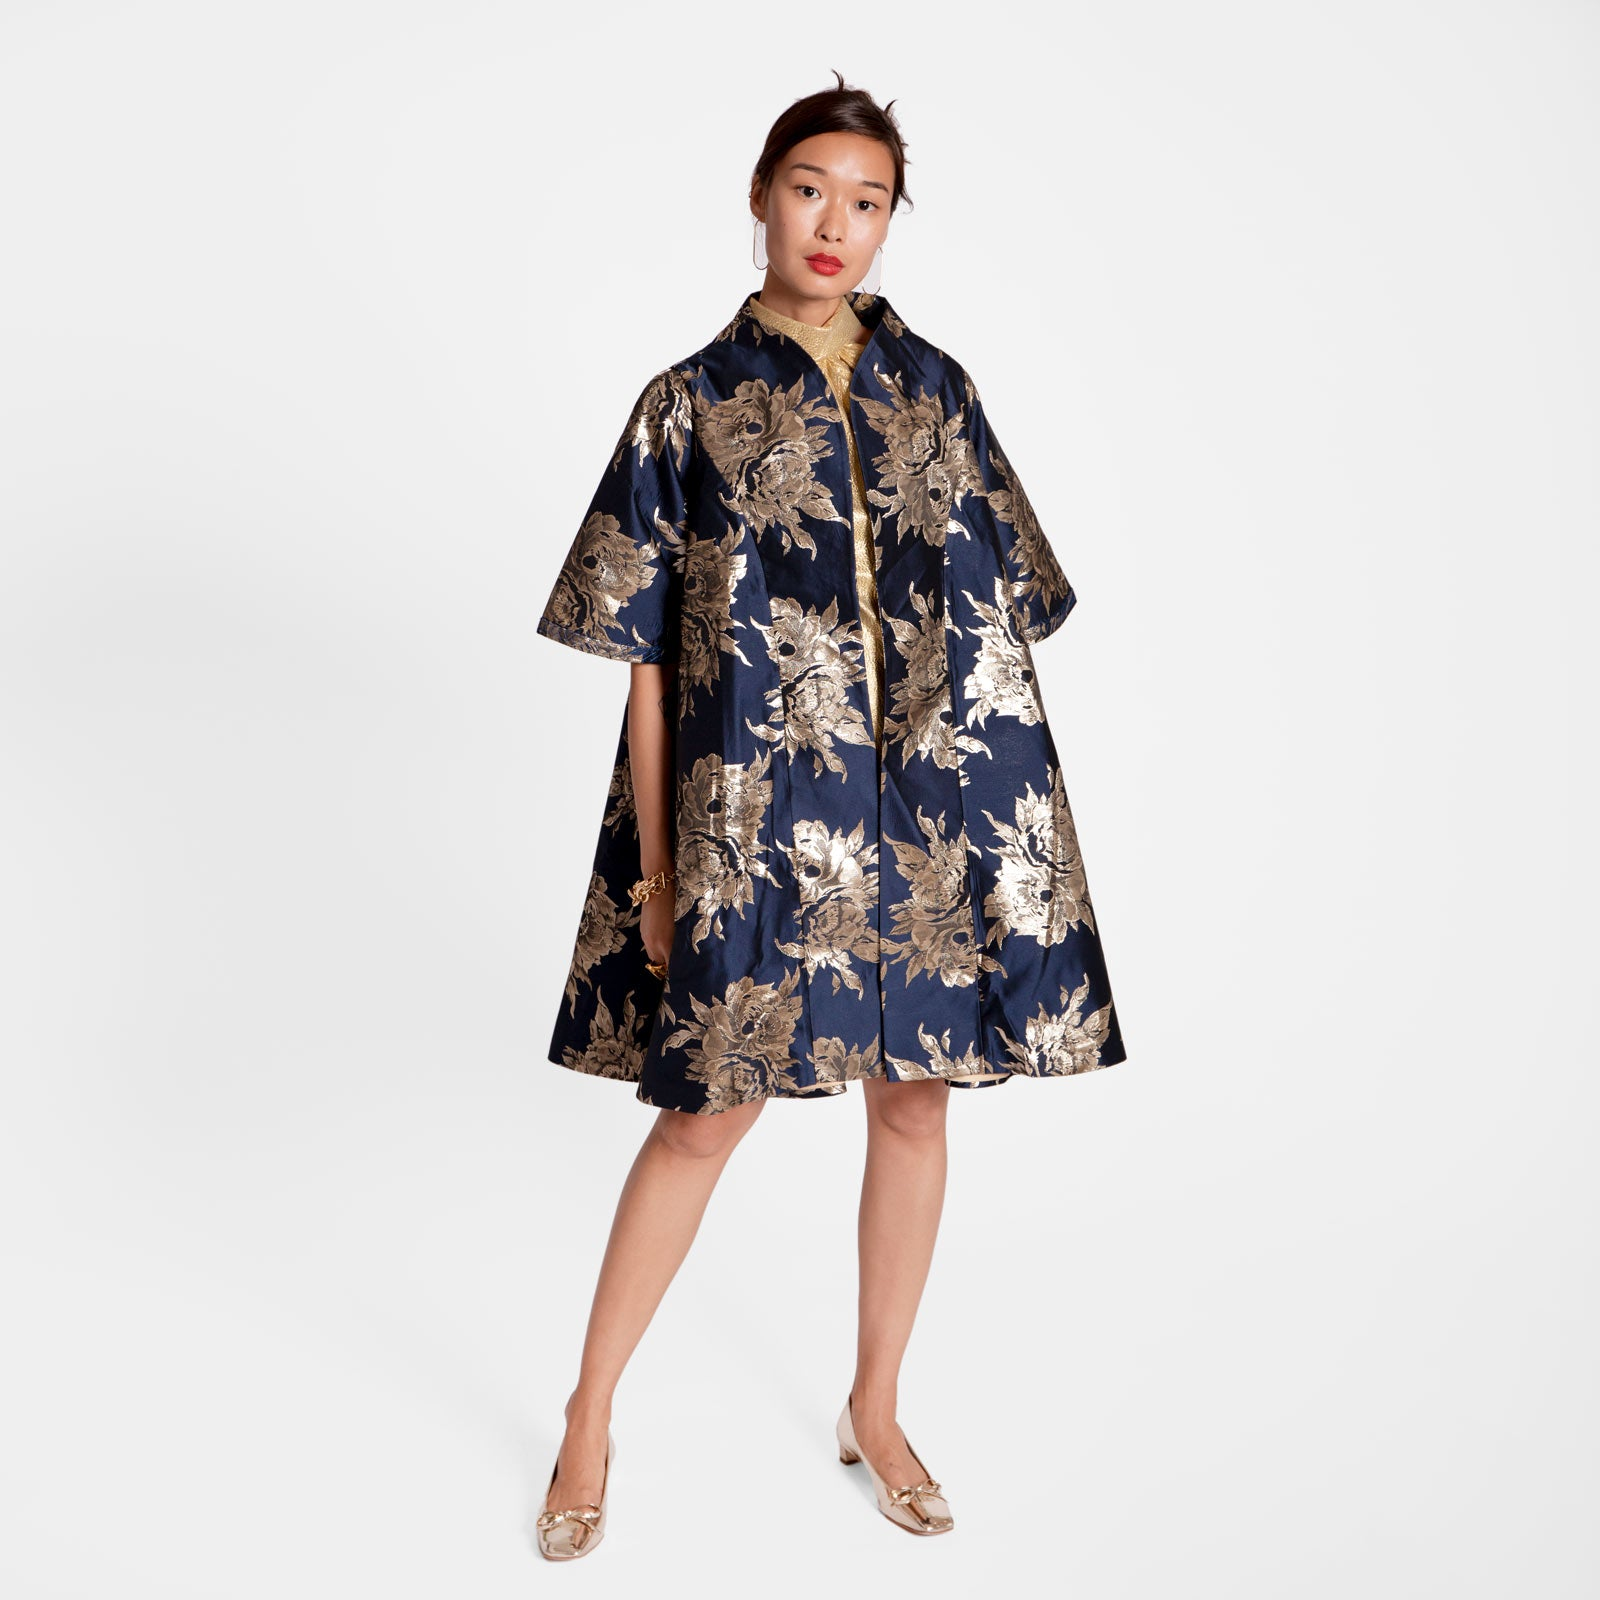 Metallic Jacquard Swing Coat Navy - Frances Valentine